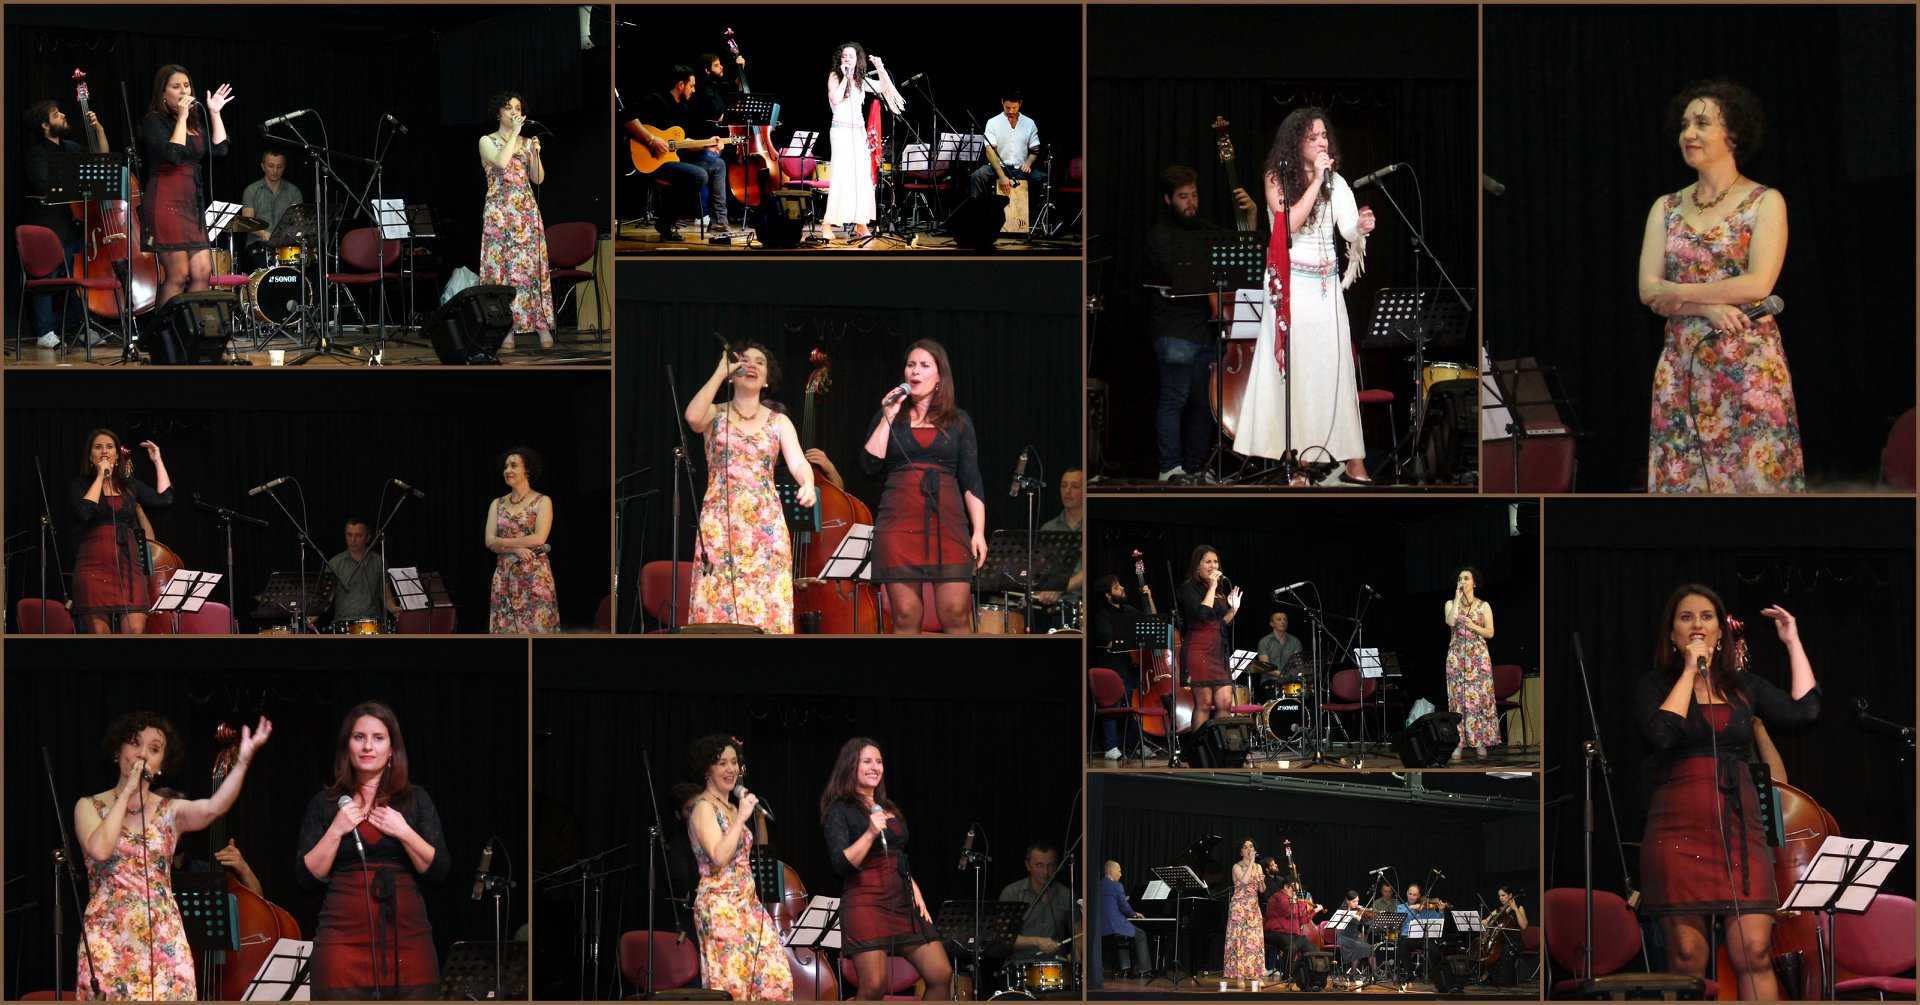 New original songs by Lana Sokolov, Faustina Abad and Orly Solomon with orchestra at Harmony Hall, Jerusalem